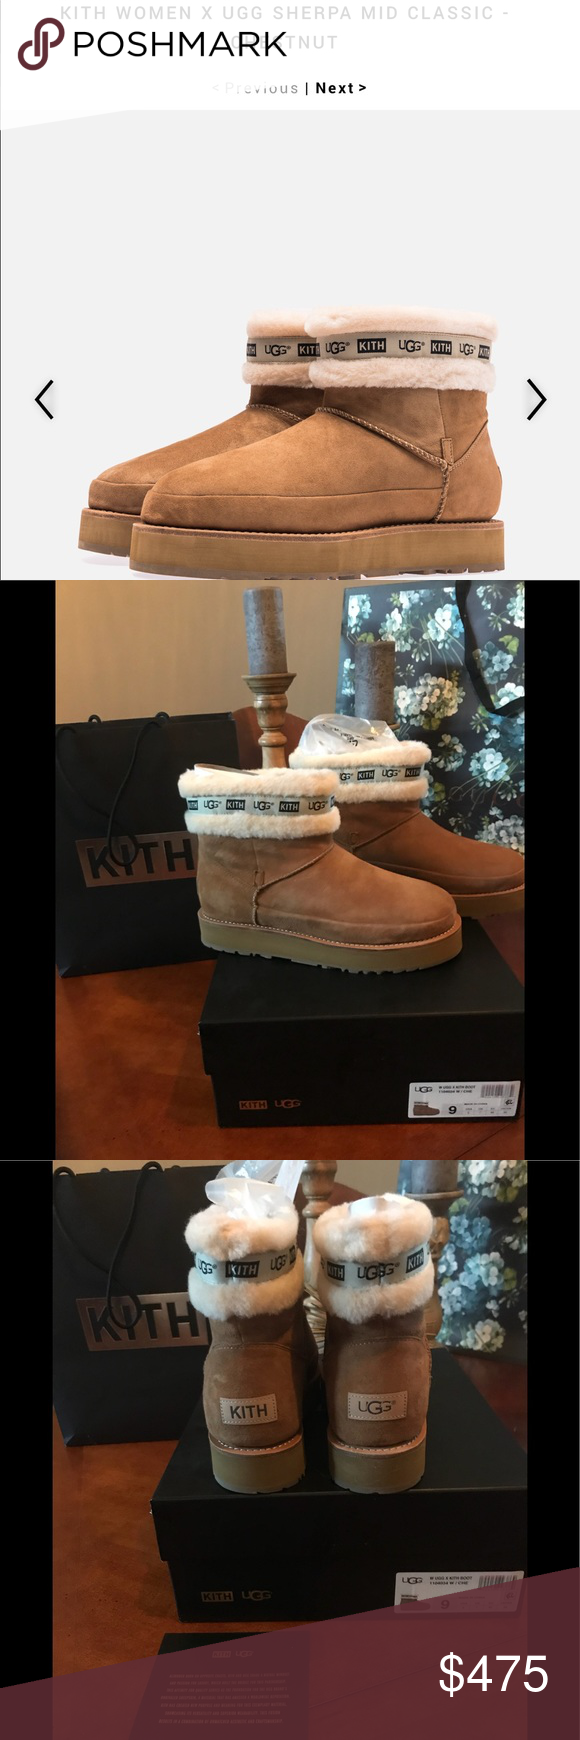 d21ff858d89 Kith Women's X Ugg SOLD OUT!!! Kith Women's X Ugg collaboration. I ...